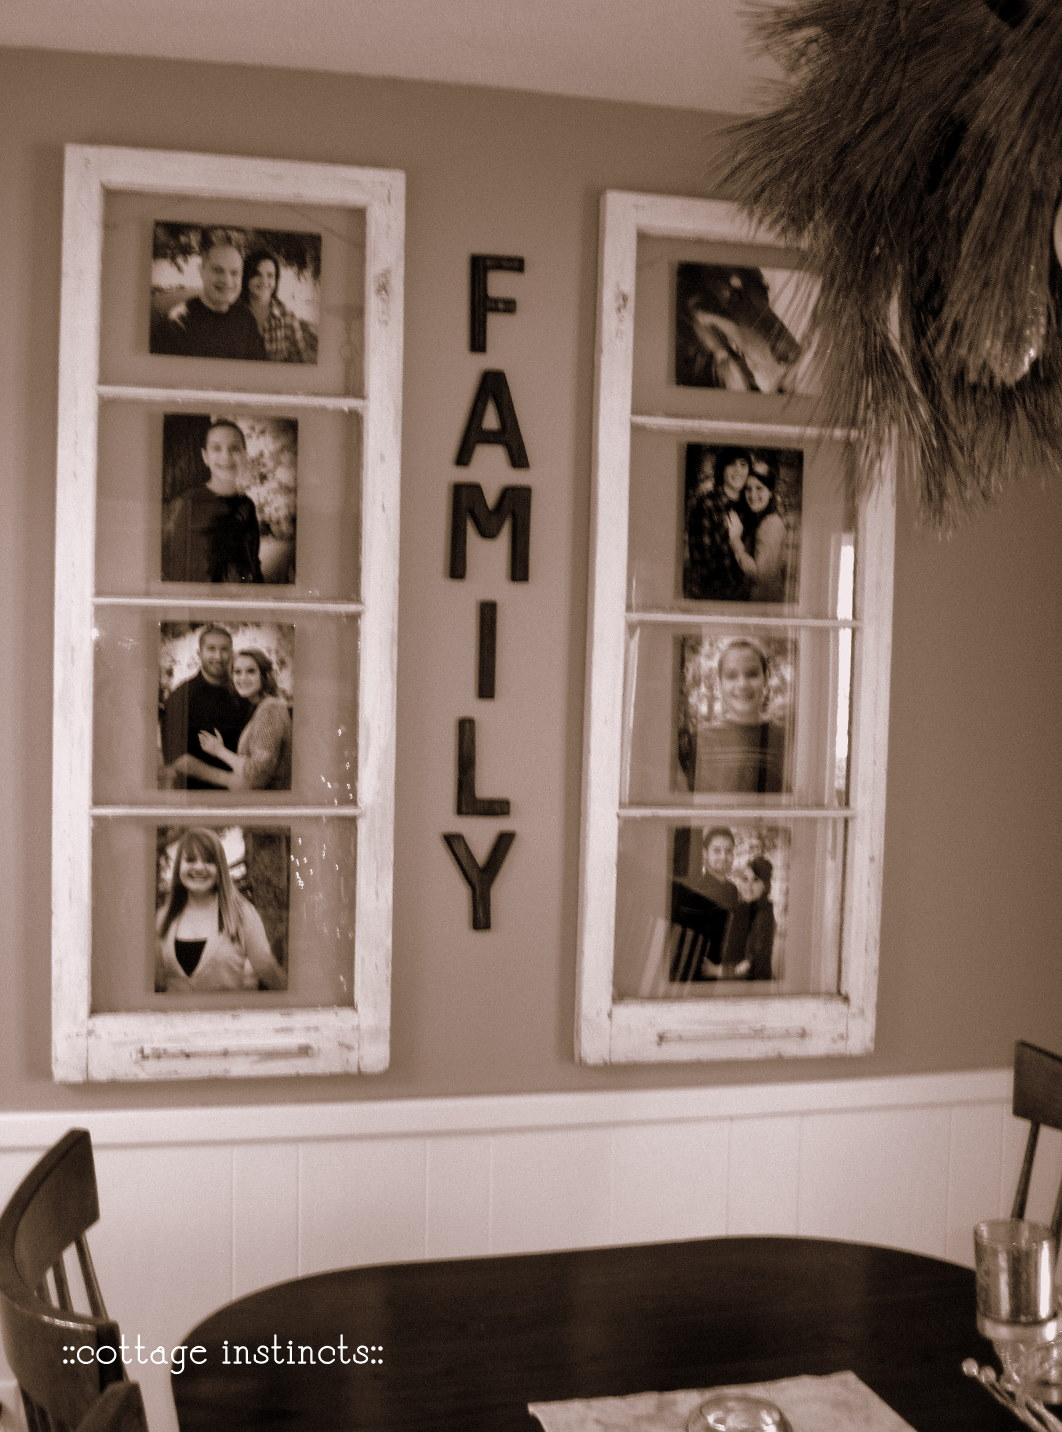 Diy Home Decor Use Old Windows As New Photo Frames Decorating Ideas For Picture Frames